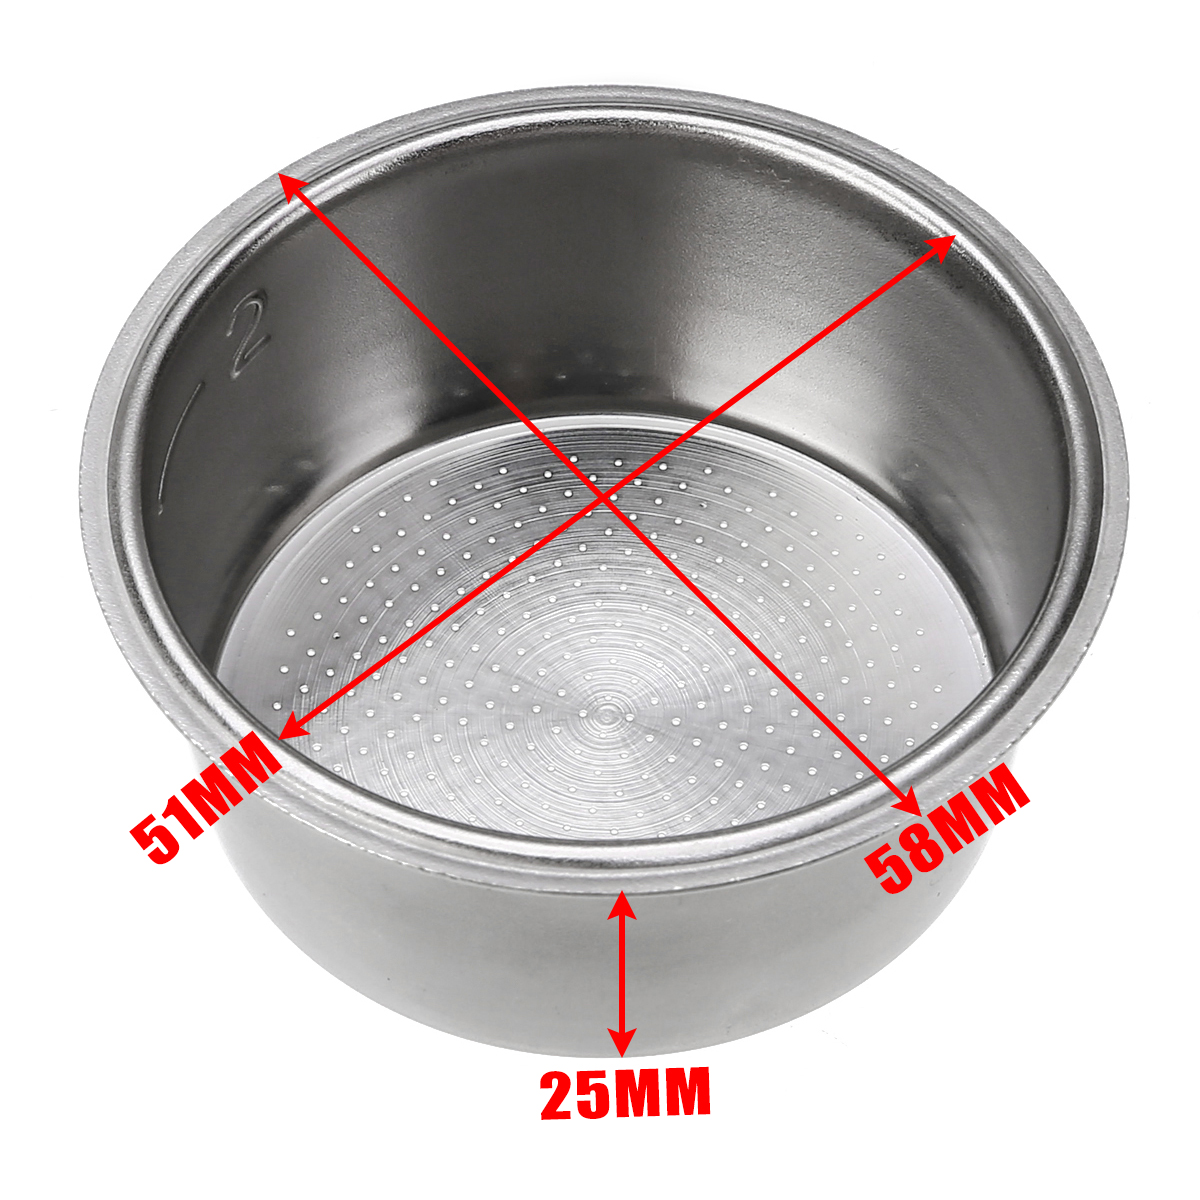 Mayitr Coffee Tea Filter Stainless Steel Non Pressurized Coffee Filter Basket For Coffee Machine Accessories